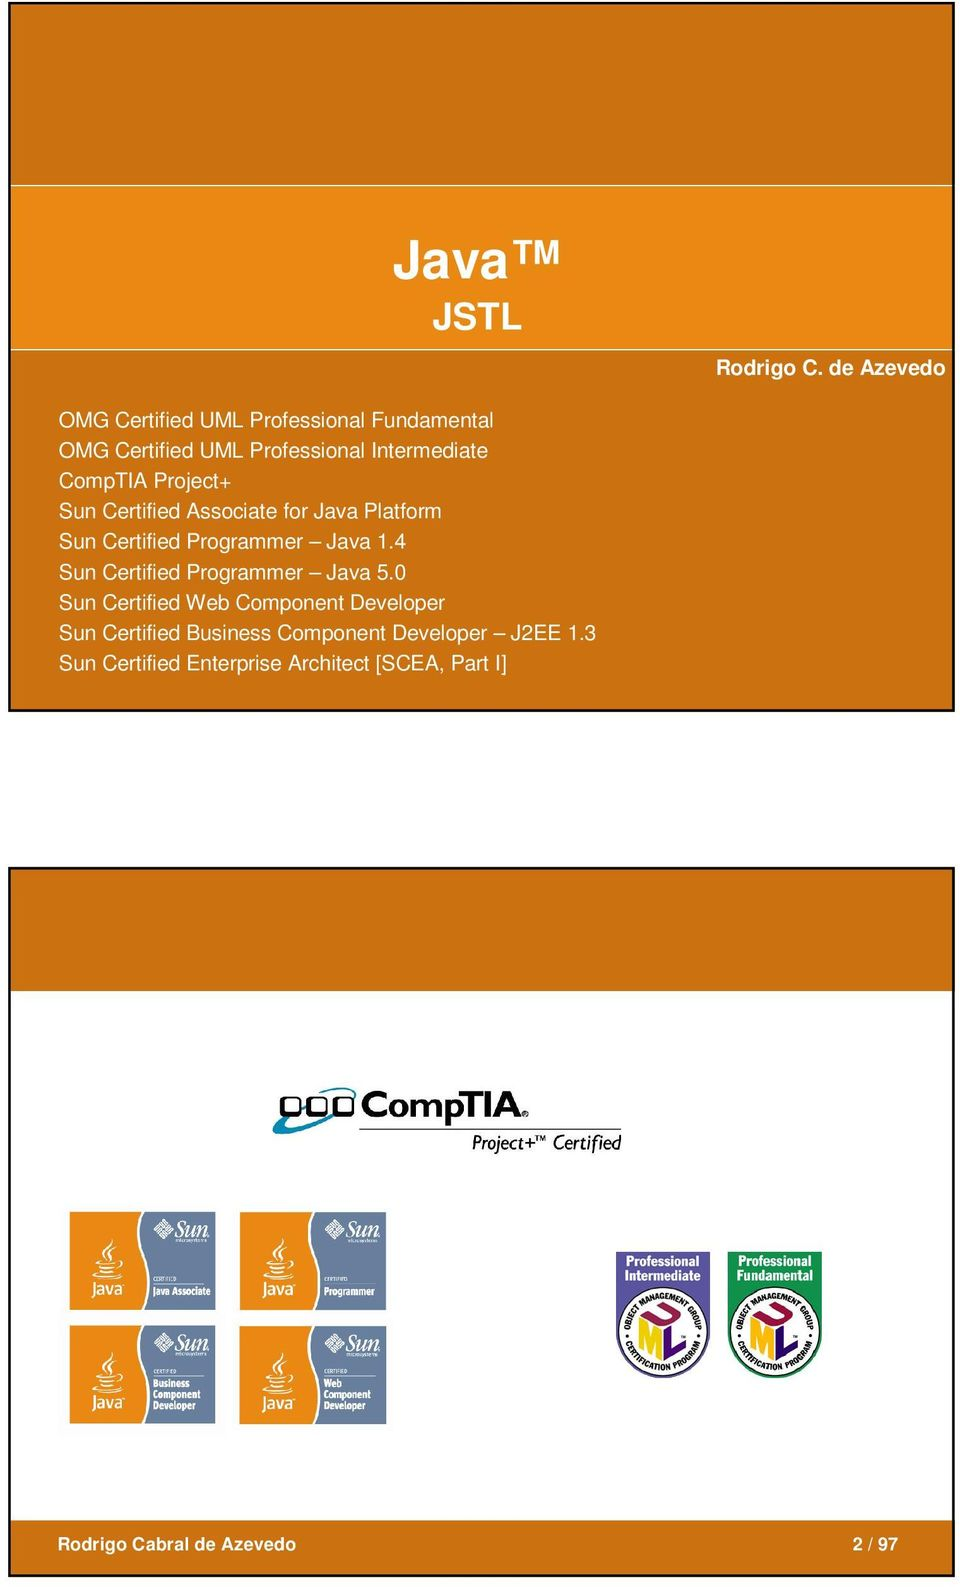 CompTIA Project+ Sun Certified Associate for Java Platform Sun Certified Programmer Java 1.